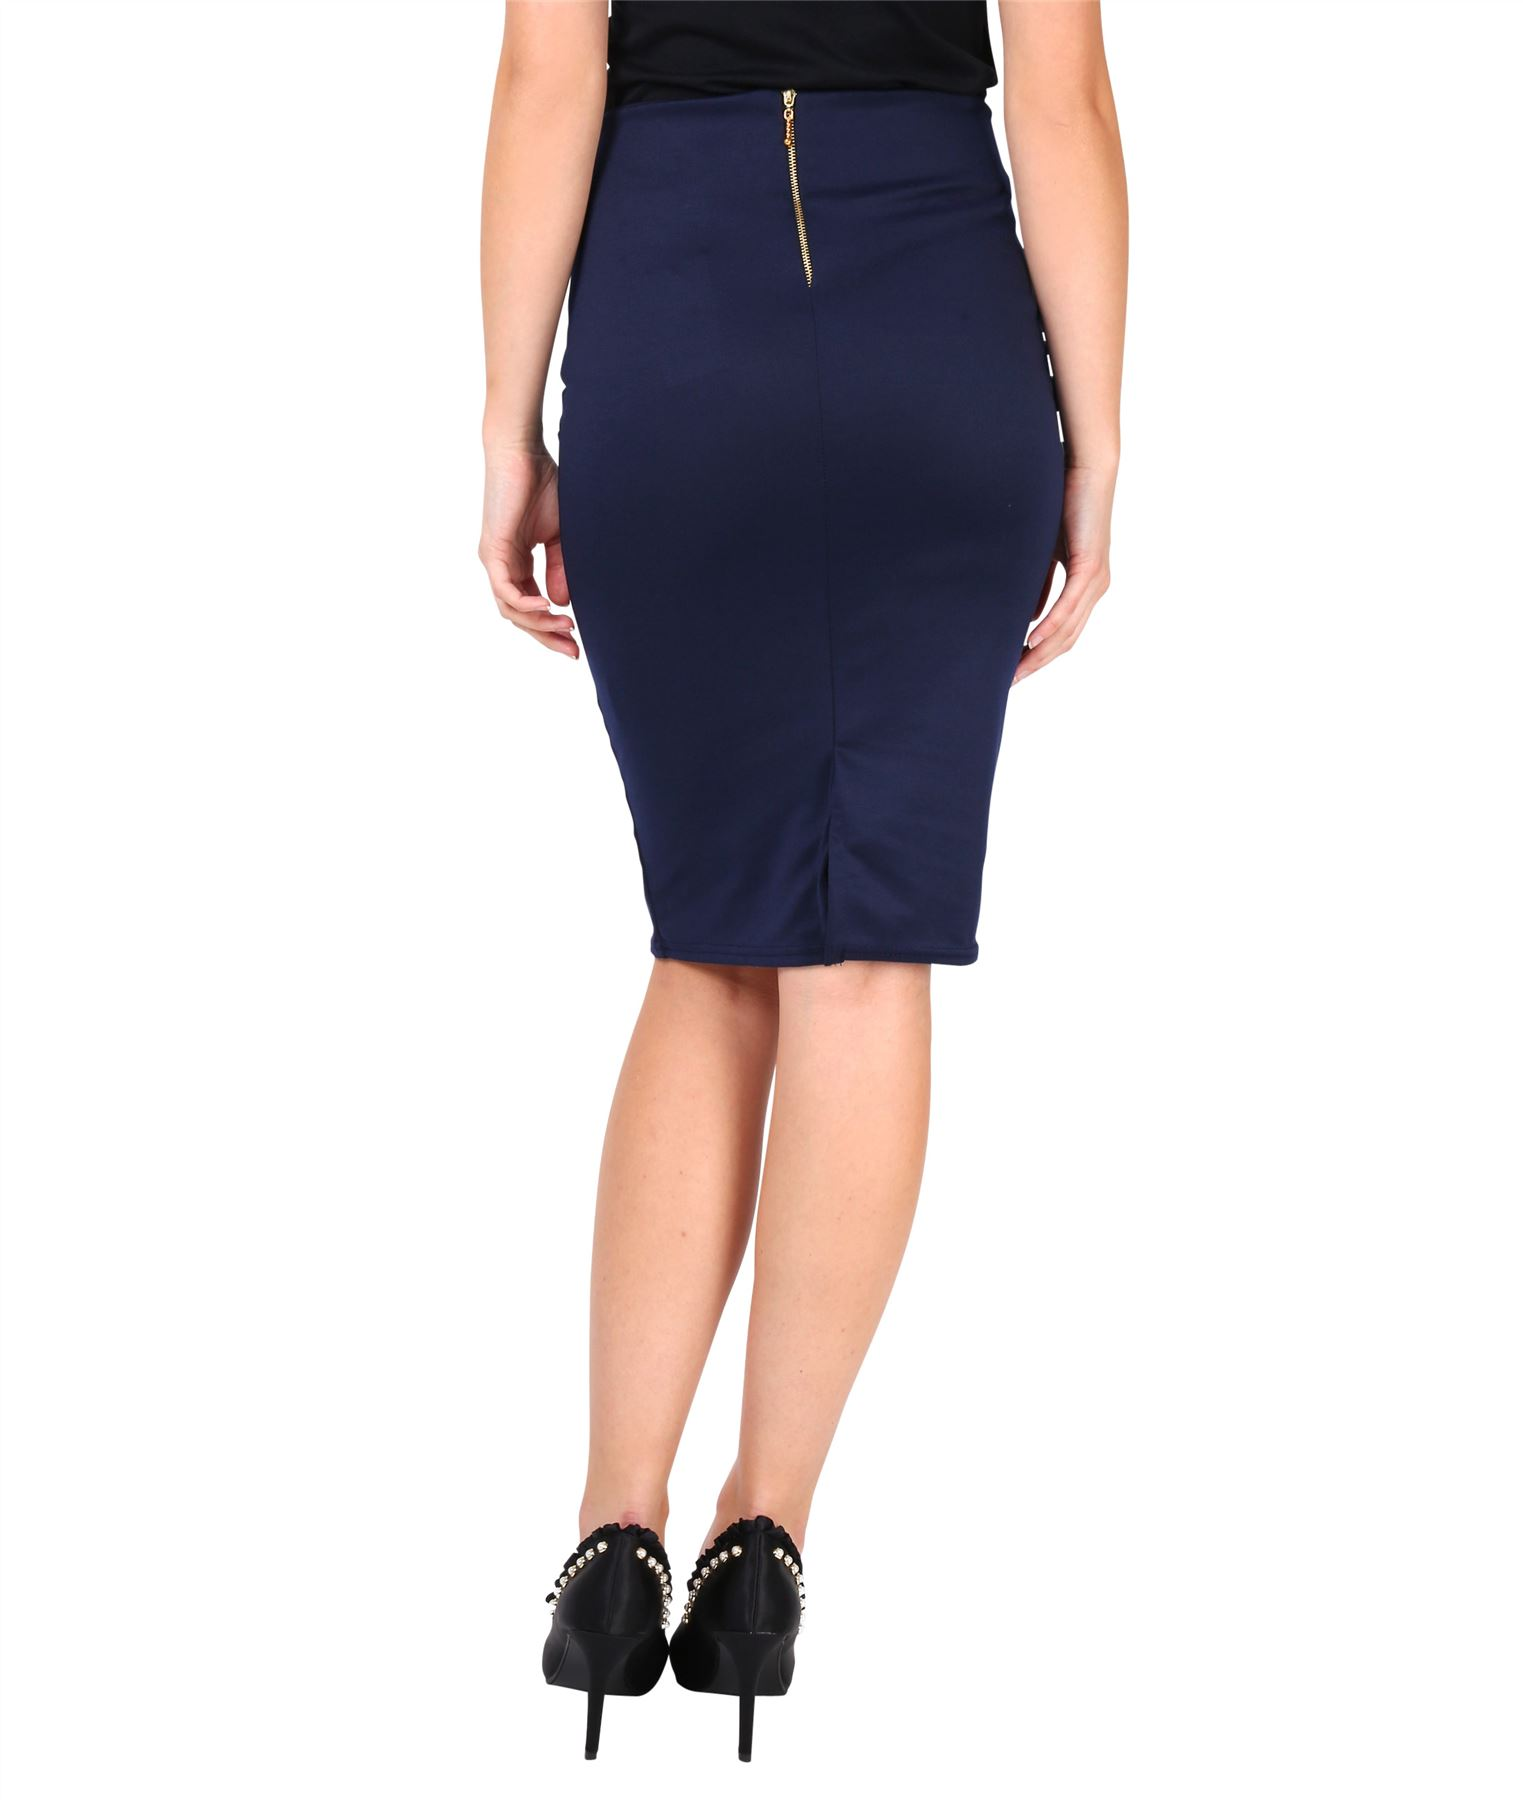 Womens-Ladies-Pencil-Skirt-Midi-Knee-Long-High-Waist-Work-Office-Business-Smart thumbnail 10